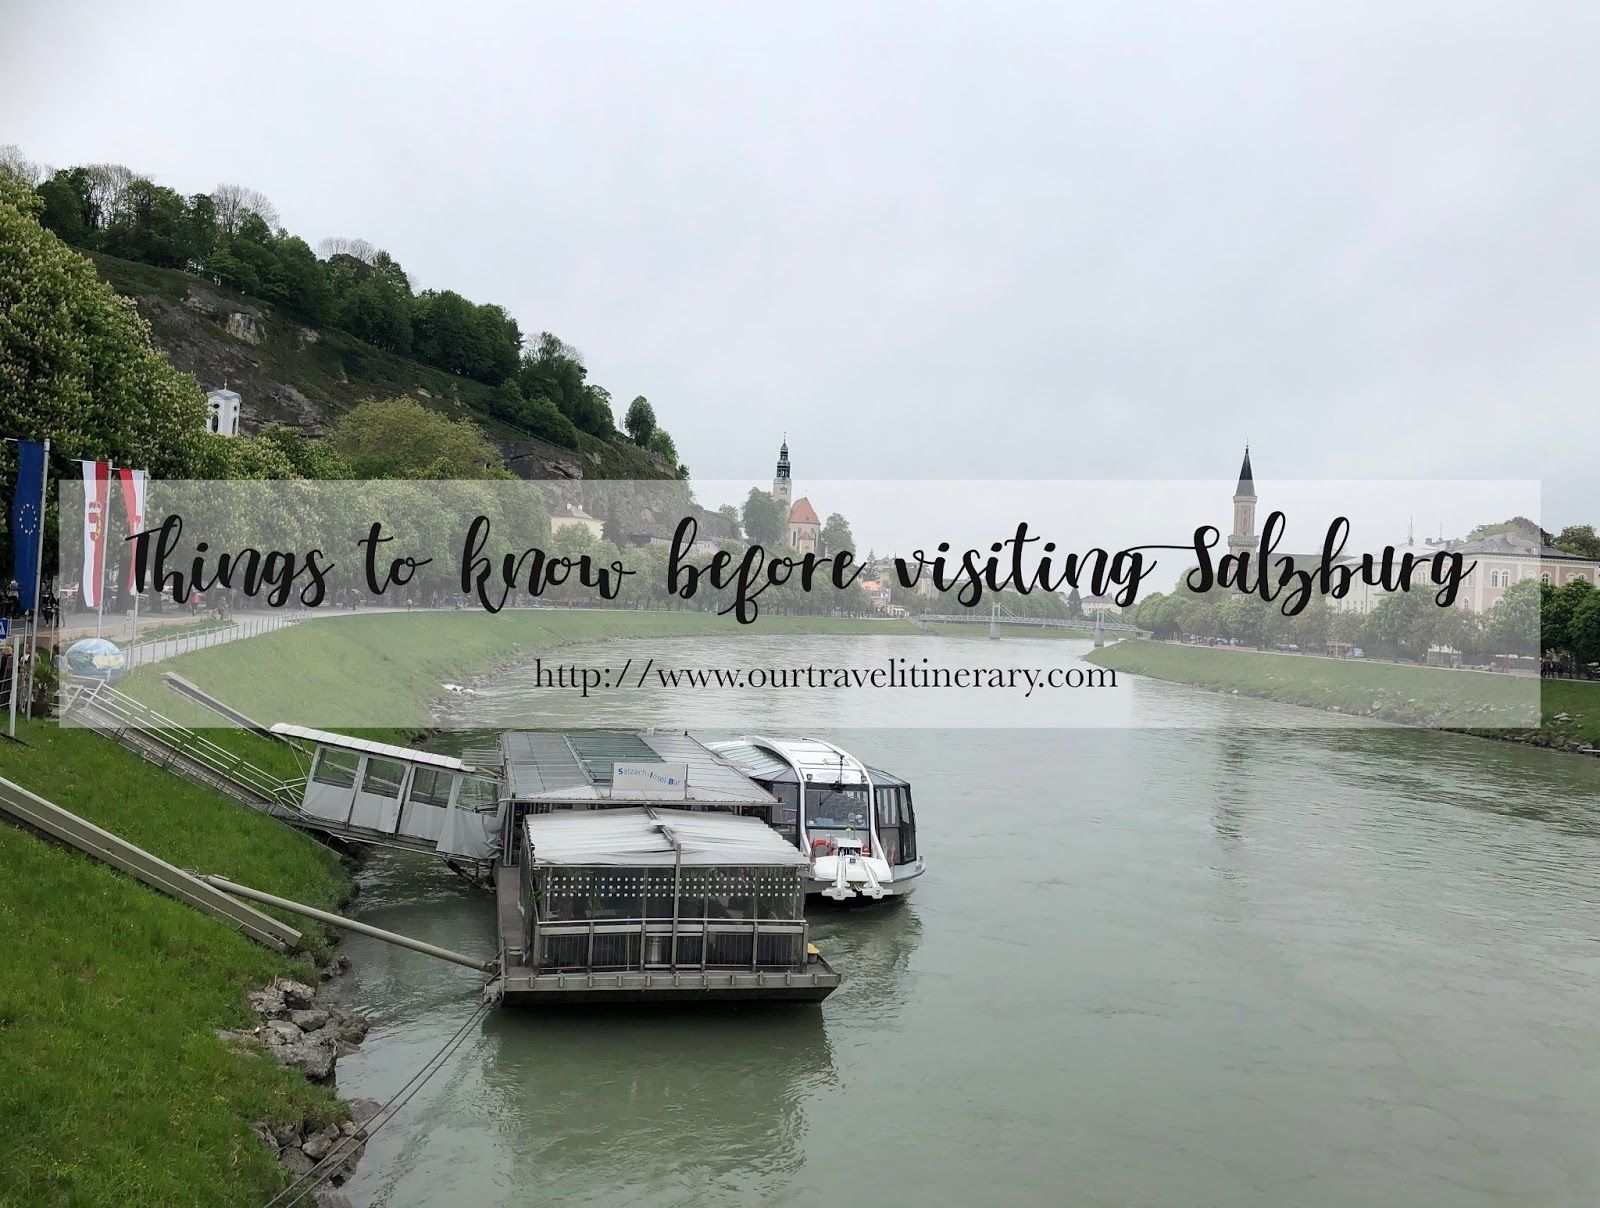 salzburg itinerary, things to do in salzburg